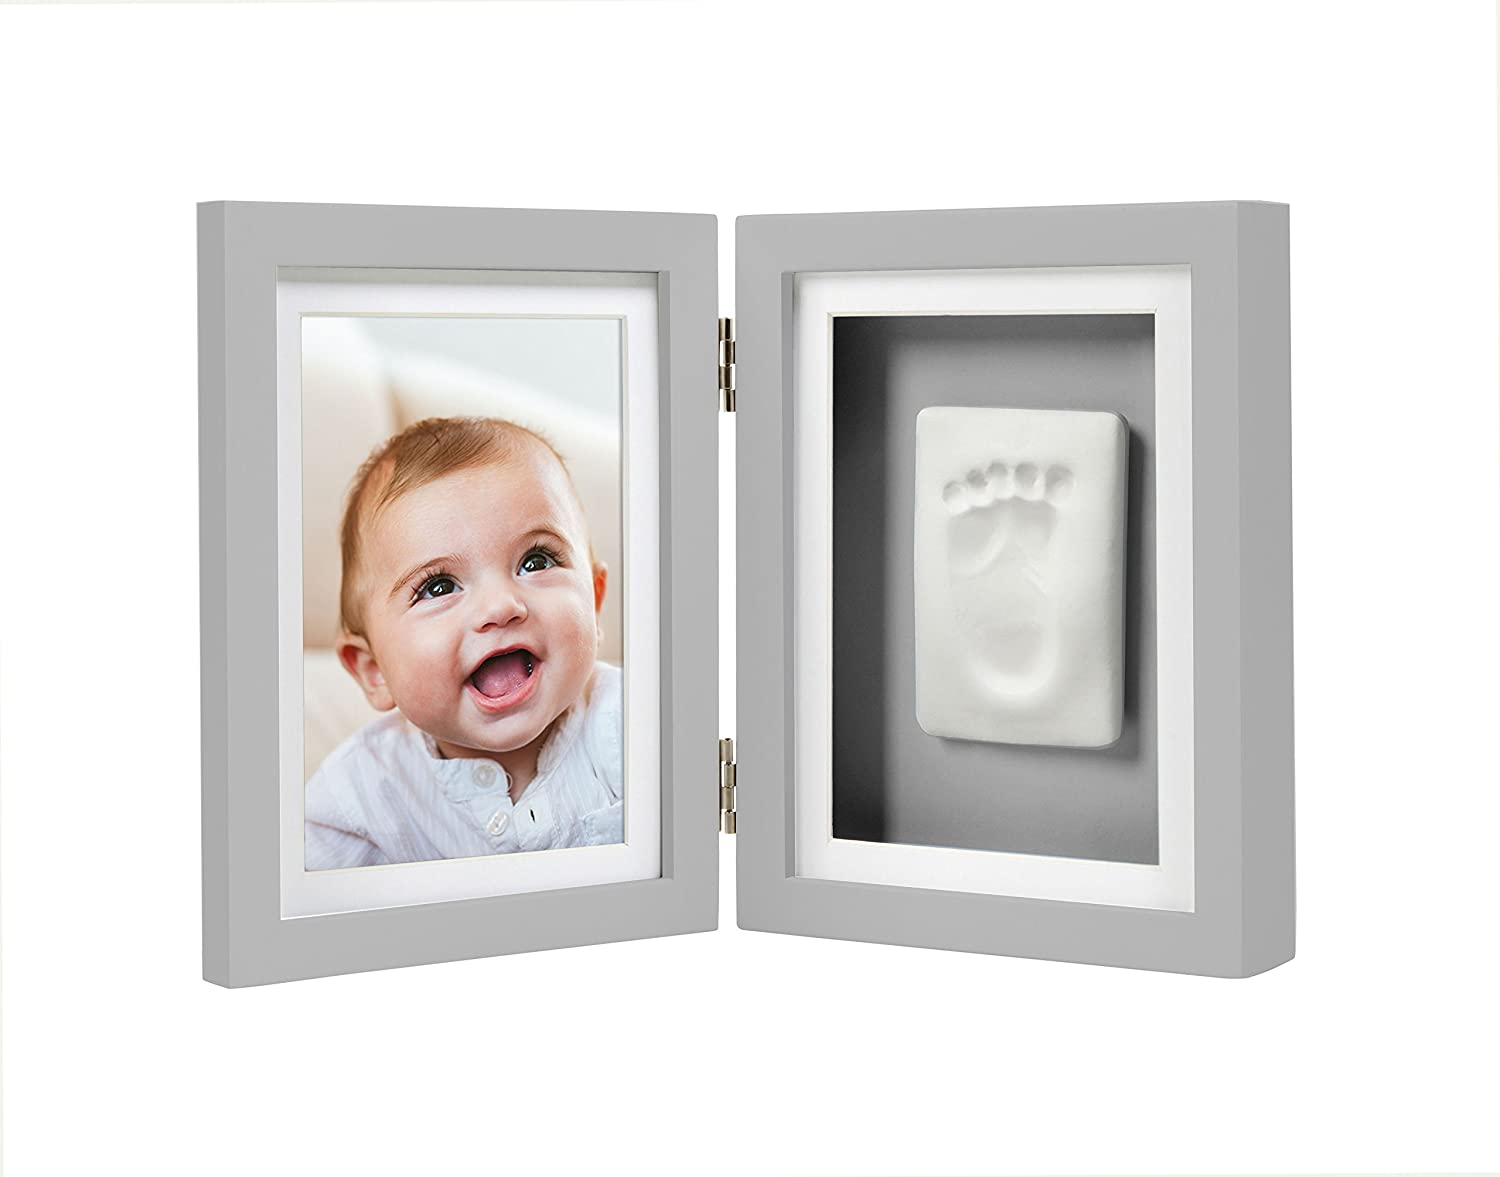 Pearhead Babyprints Baby Handprint and Footprint Desk Photo Frame & Impression Kit, Gray 21415